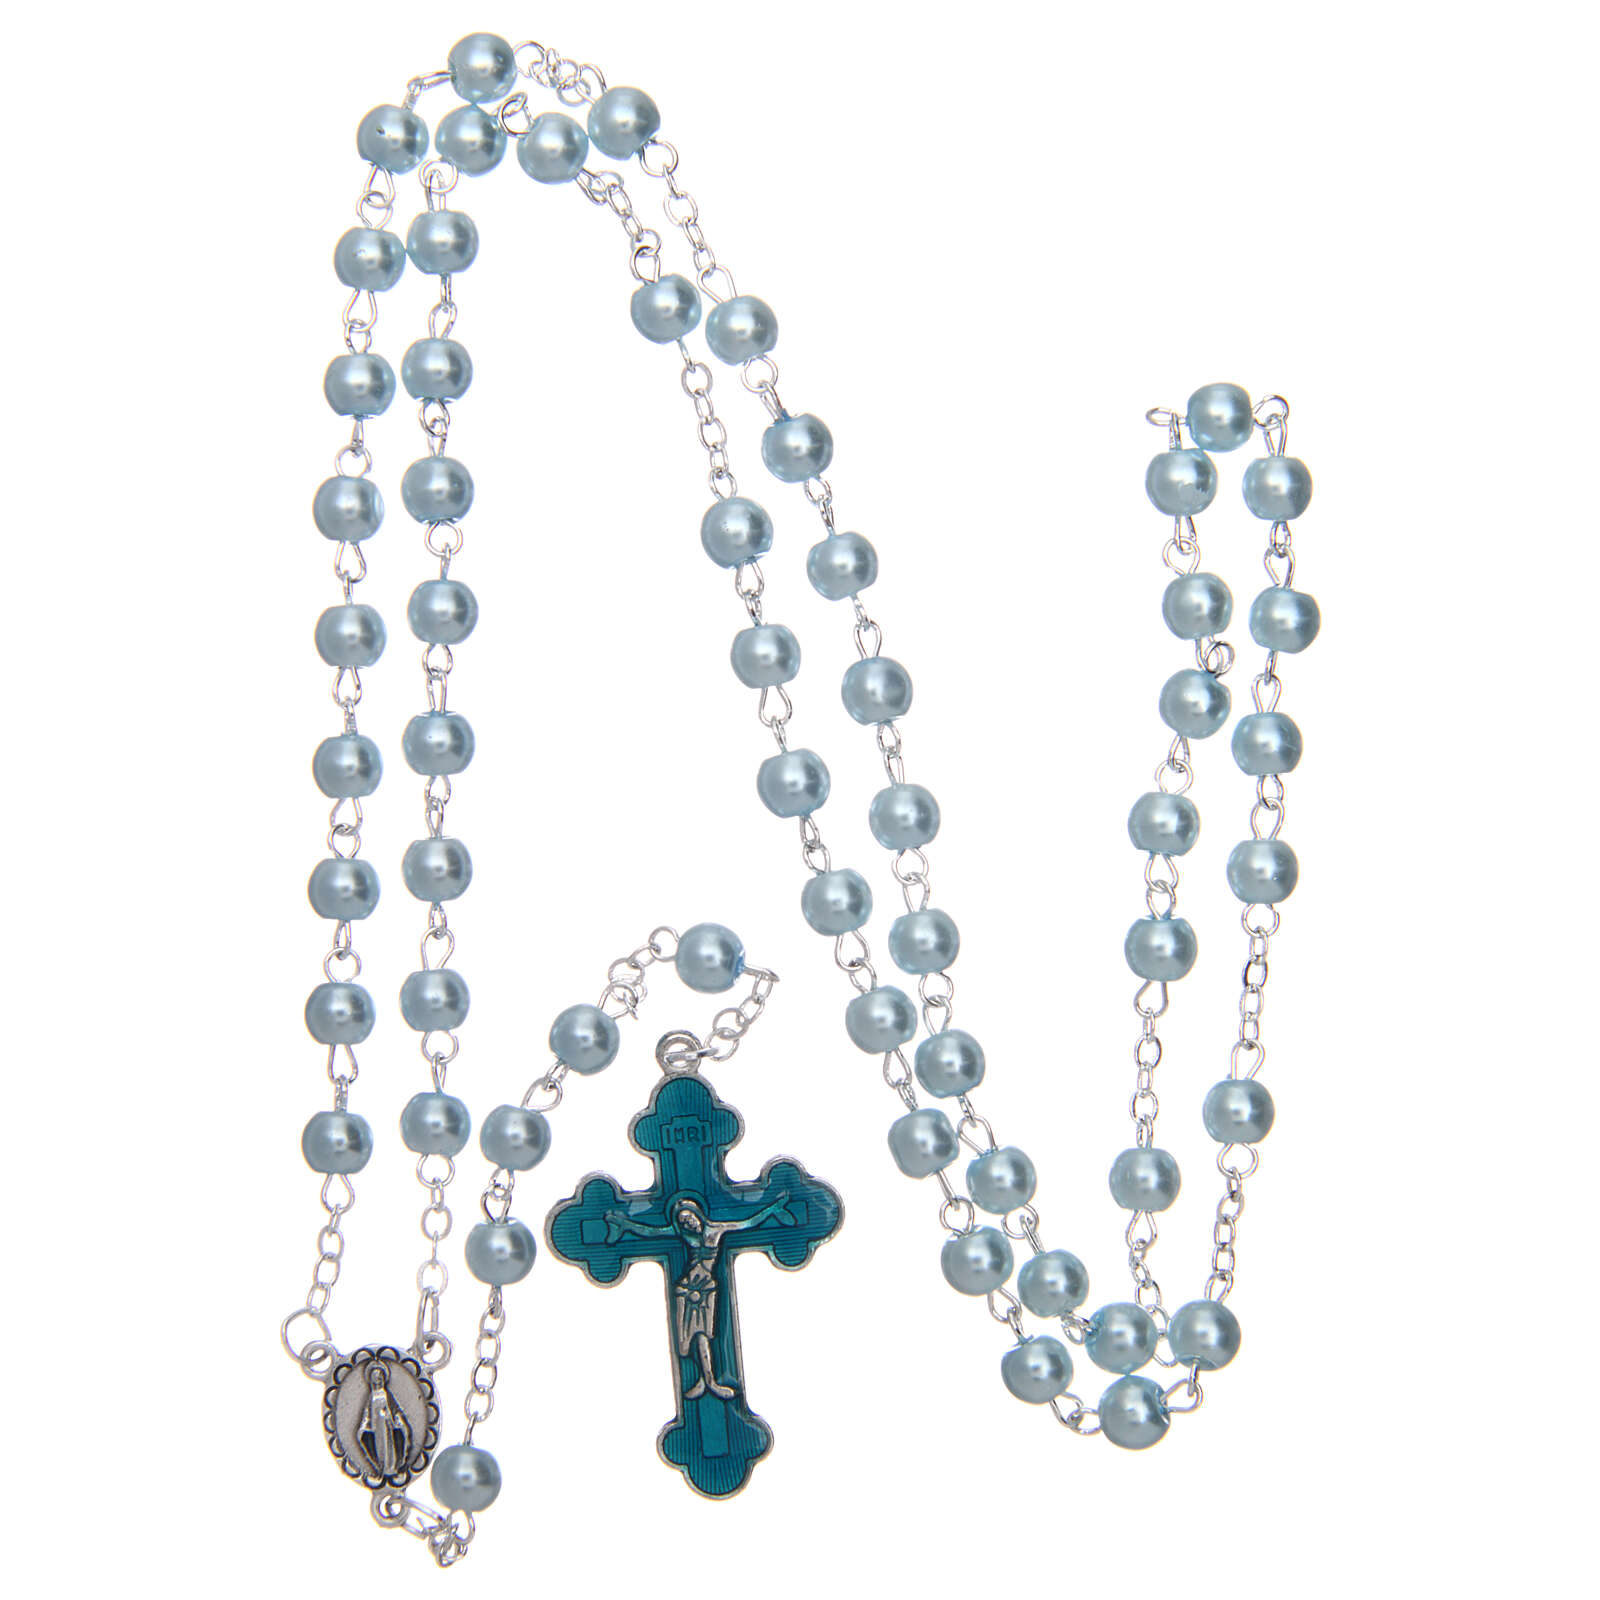 Imitation pearl rosary round light blue beads 5 mm 4